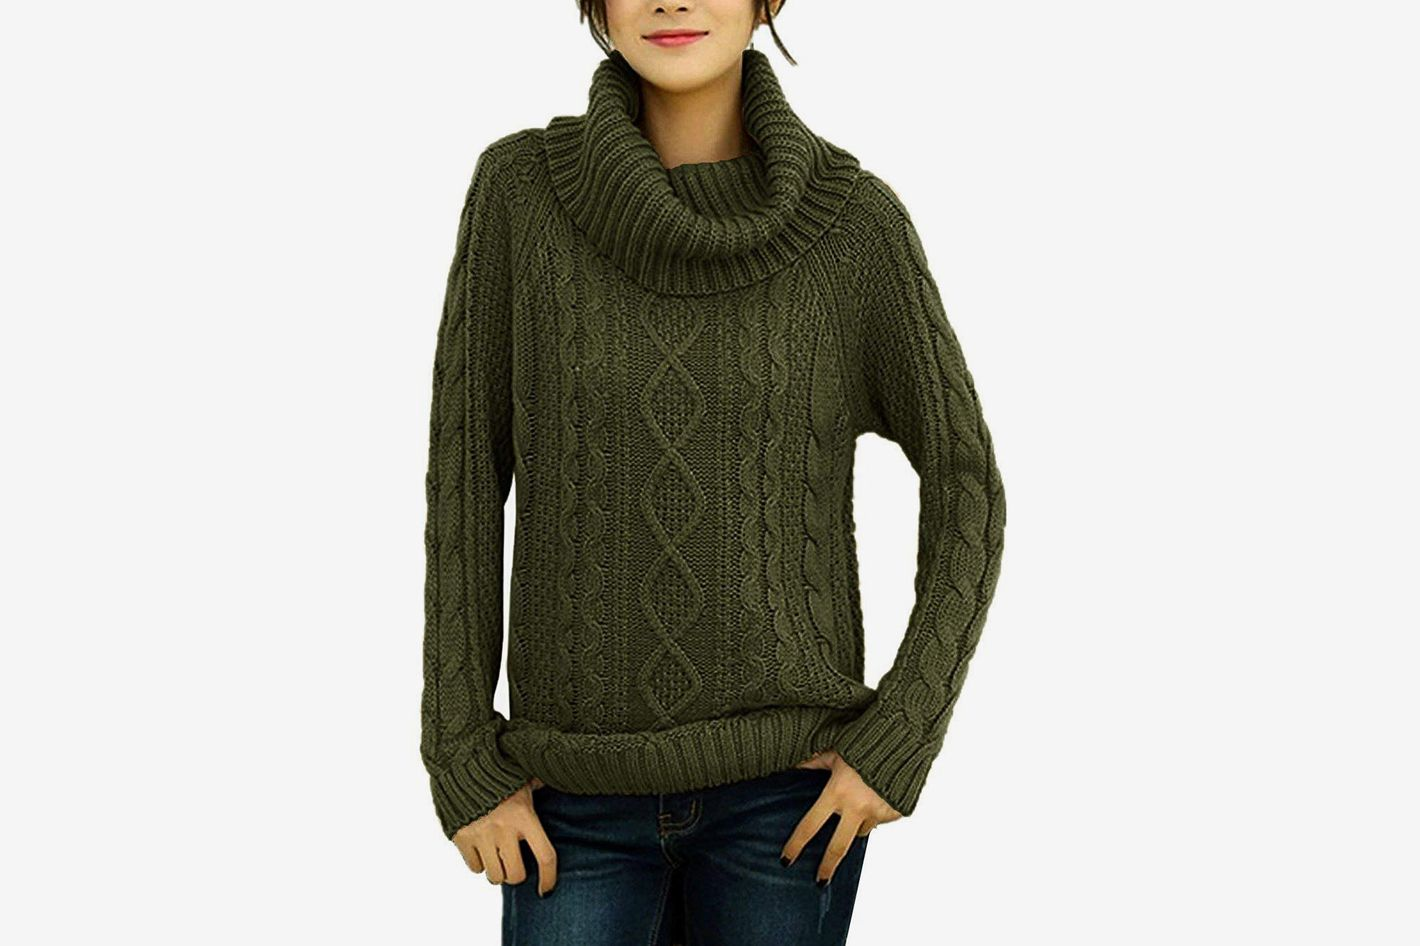 b3f0357f2f464 v28 Women's Korean Design Turtle Cowl Neck Ribbed Cable Knit Long Sweater  Jumper